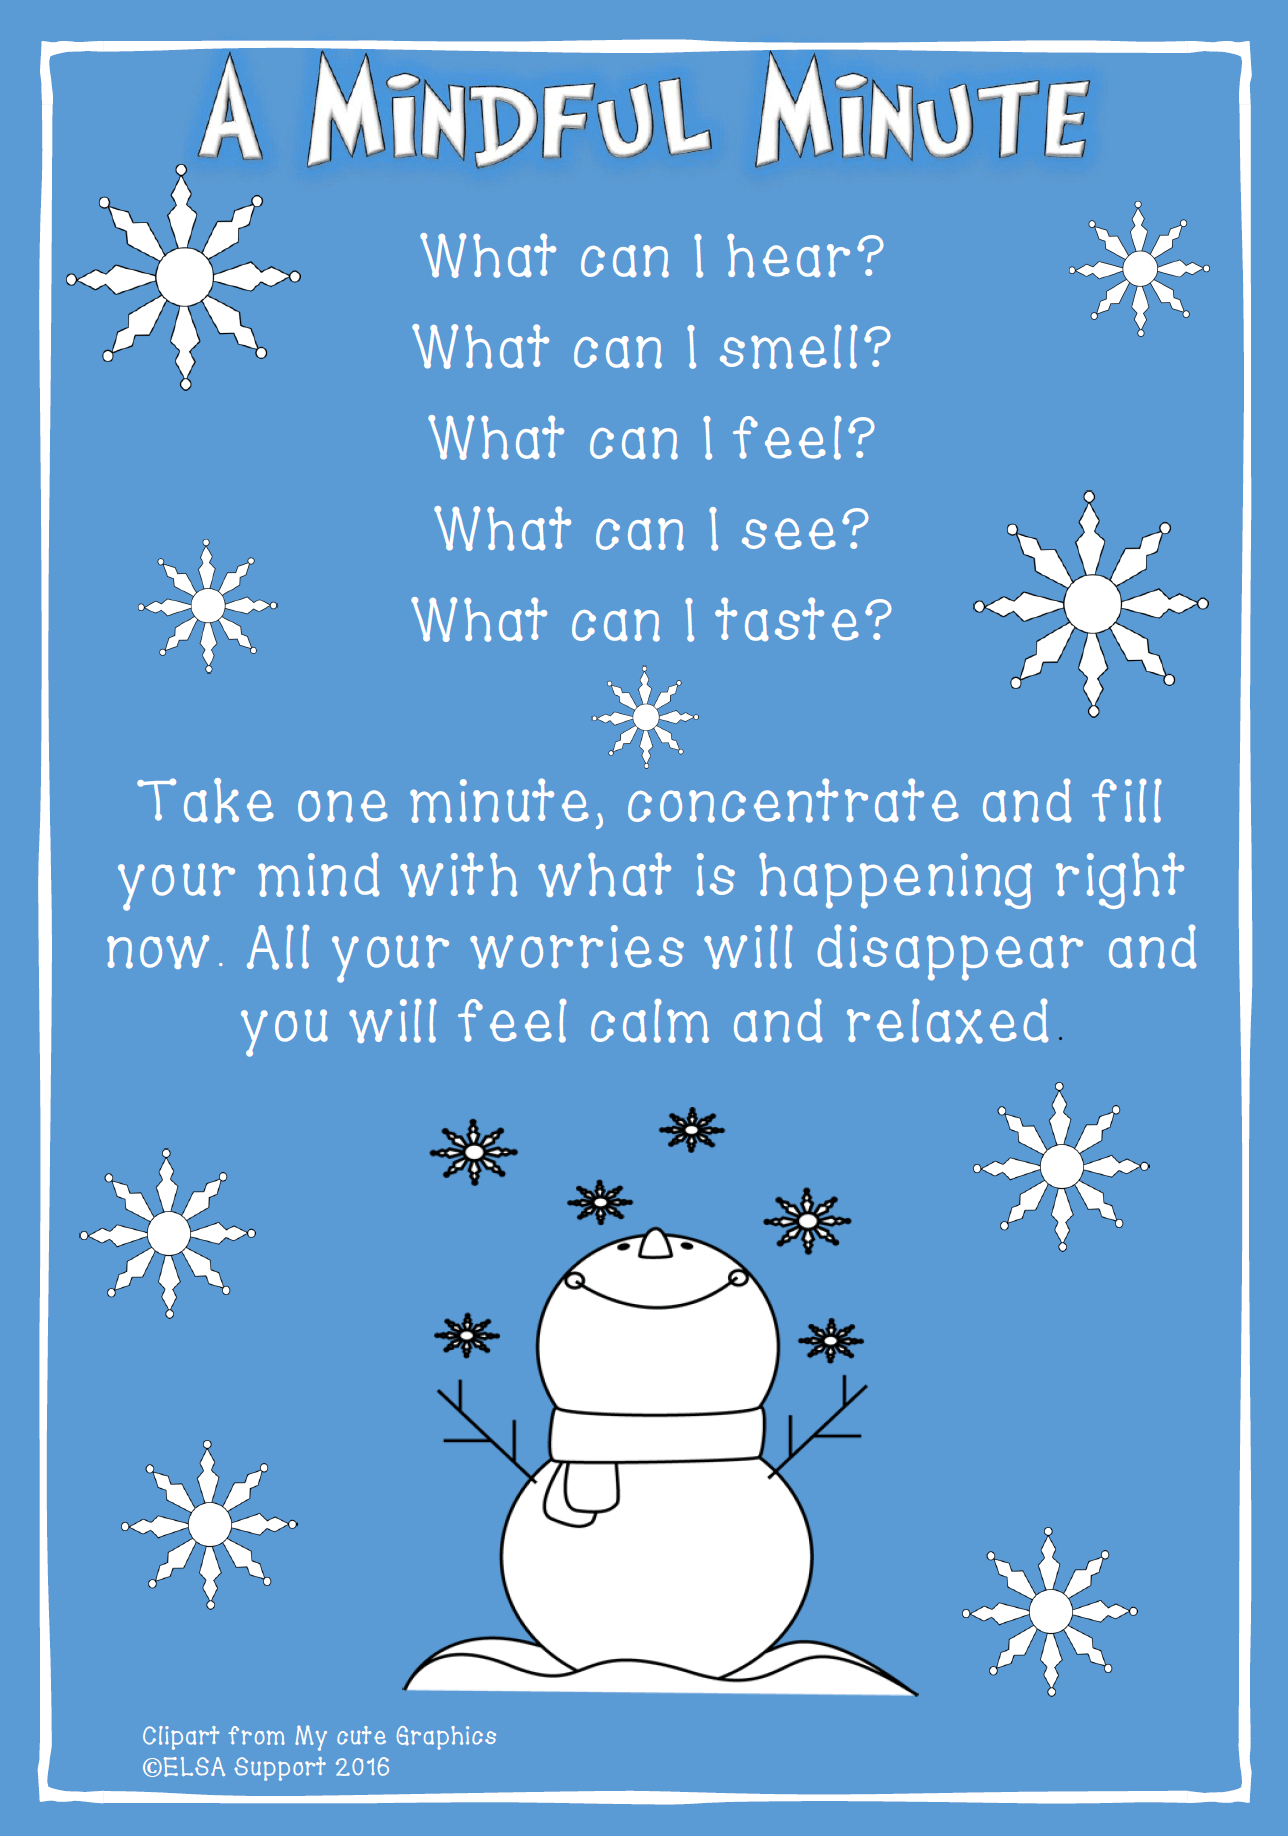 Mindful Minute